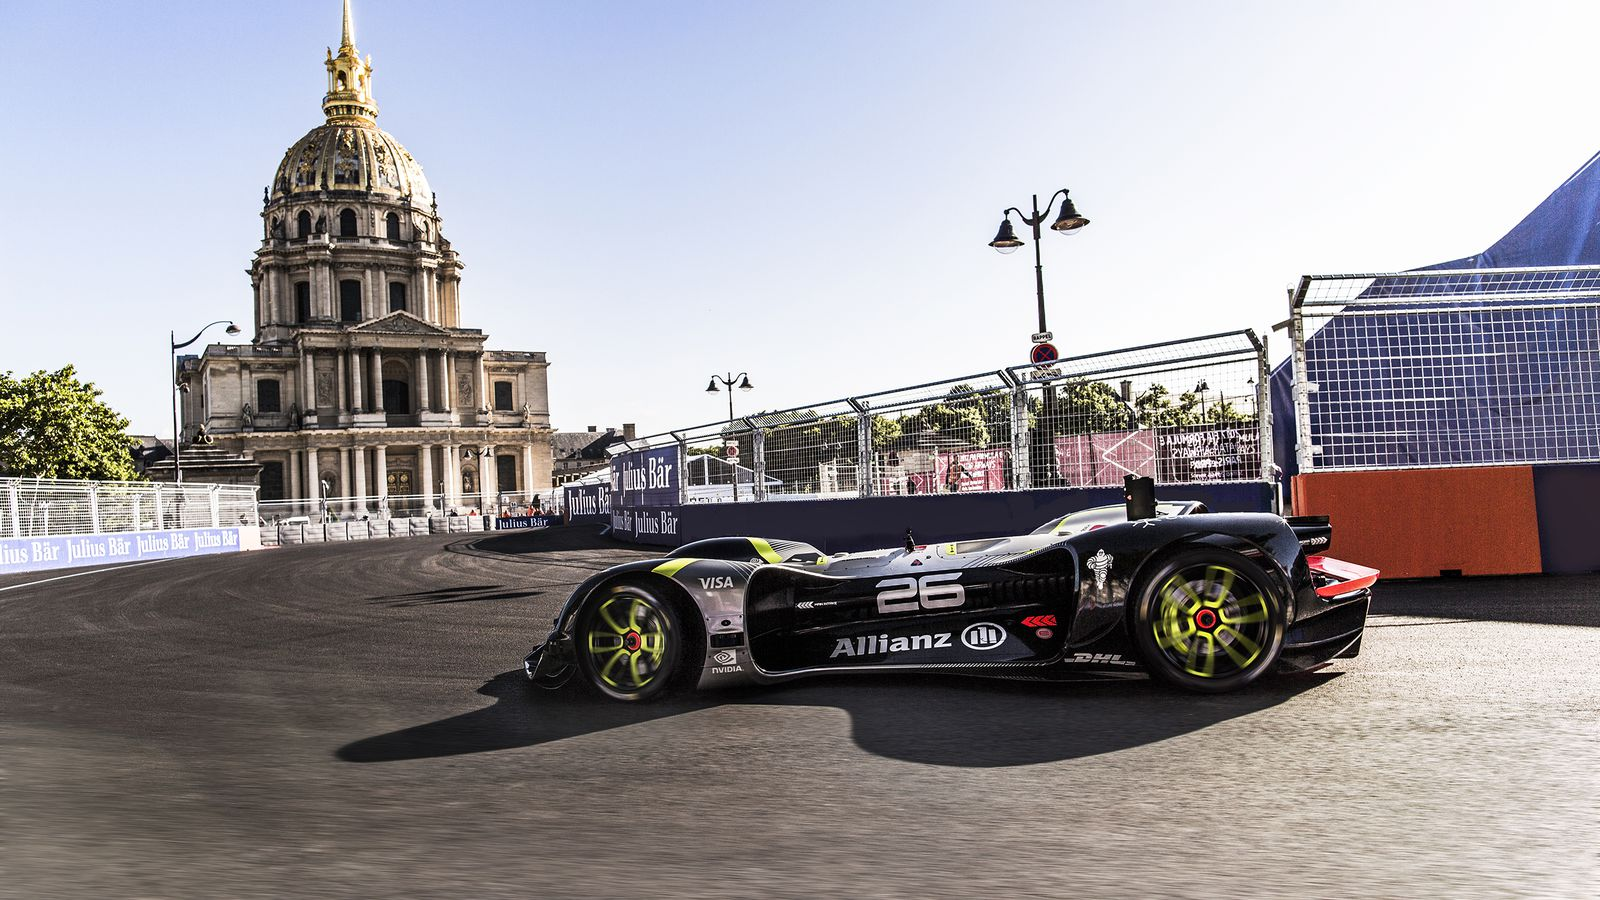 Watch Roborace's self-driving racecar lap a circuit for the